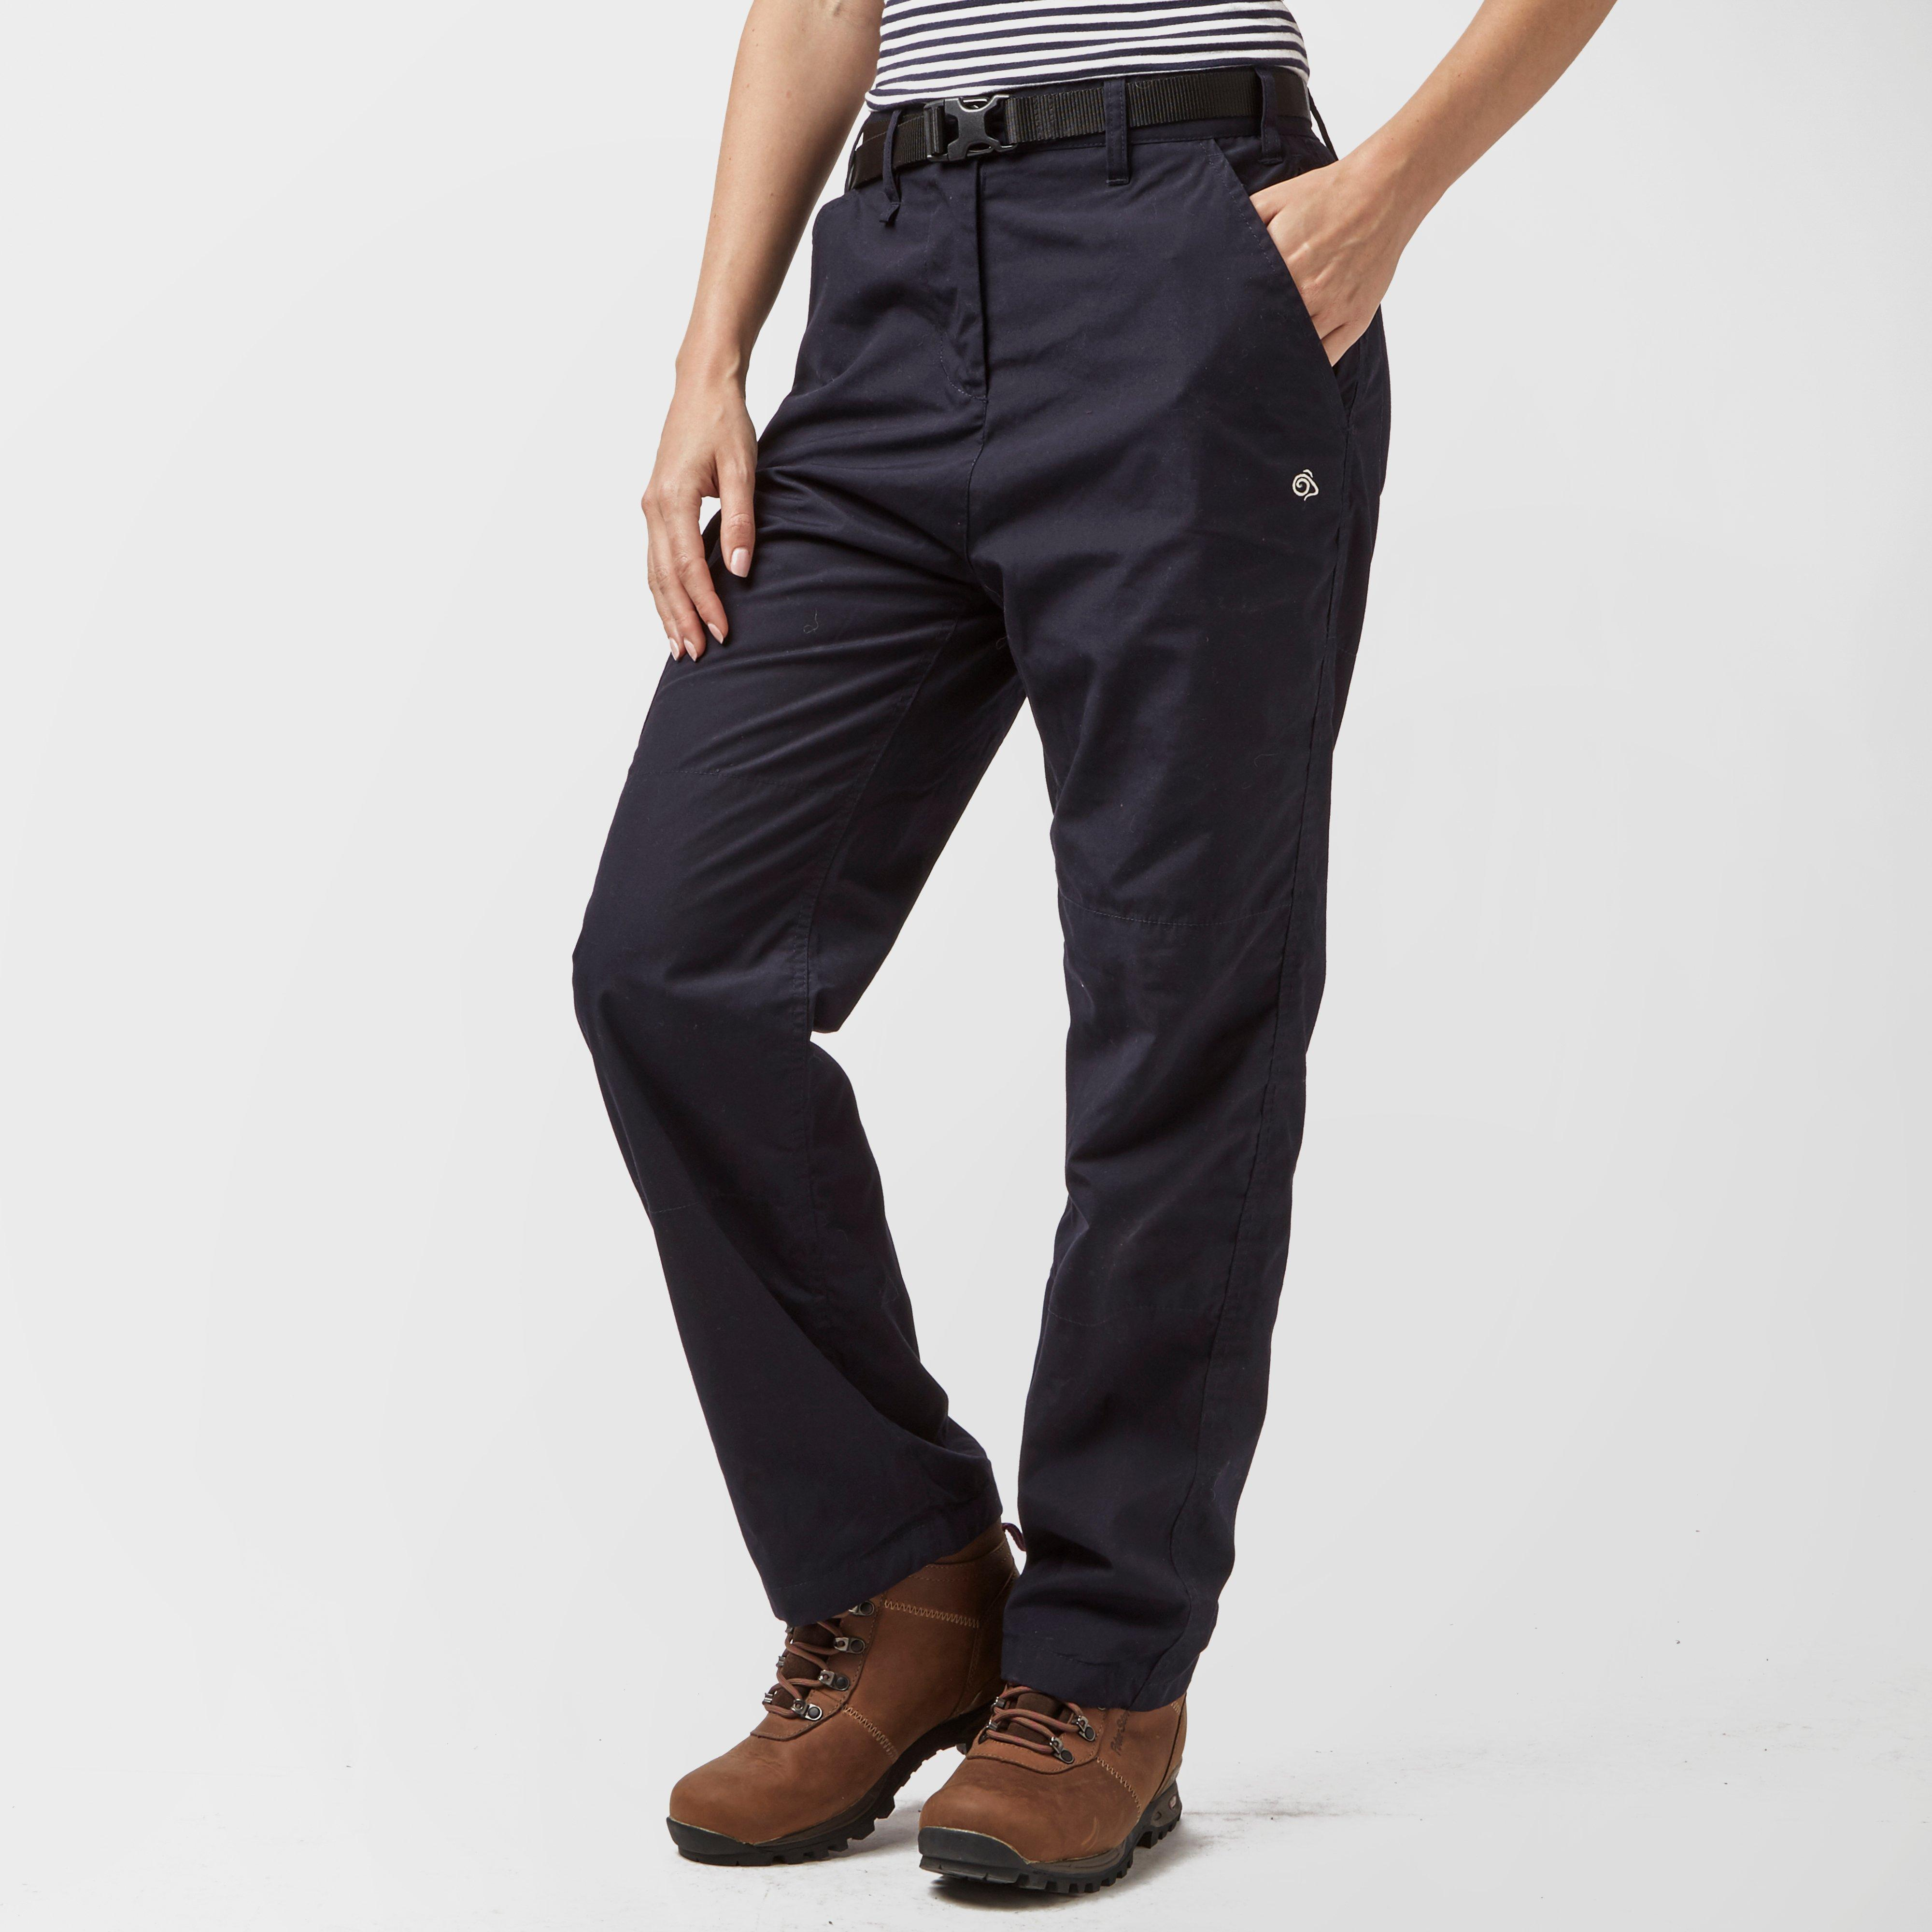 Craghoppers Womens Kiwi Winter Lined Trousers (Short) Navy